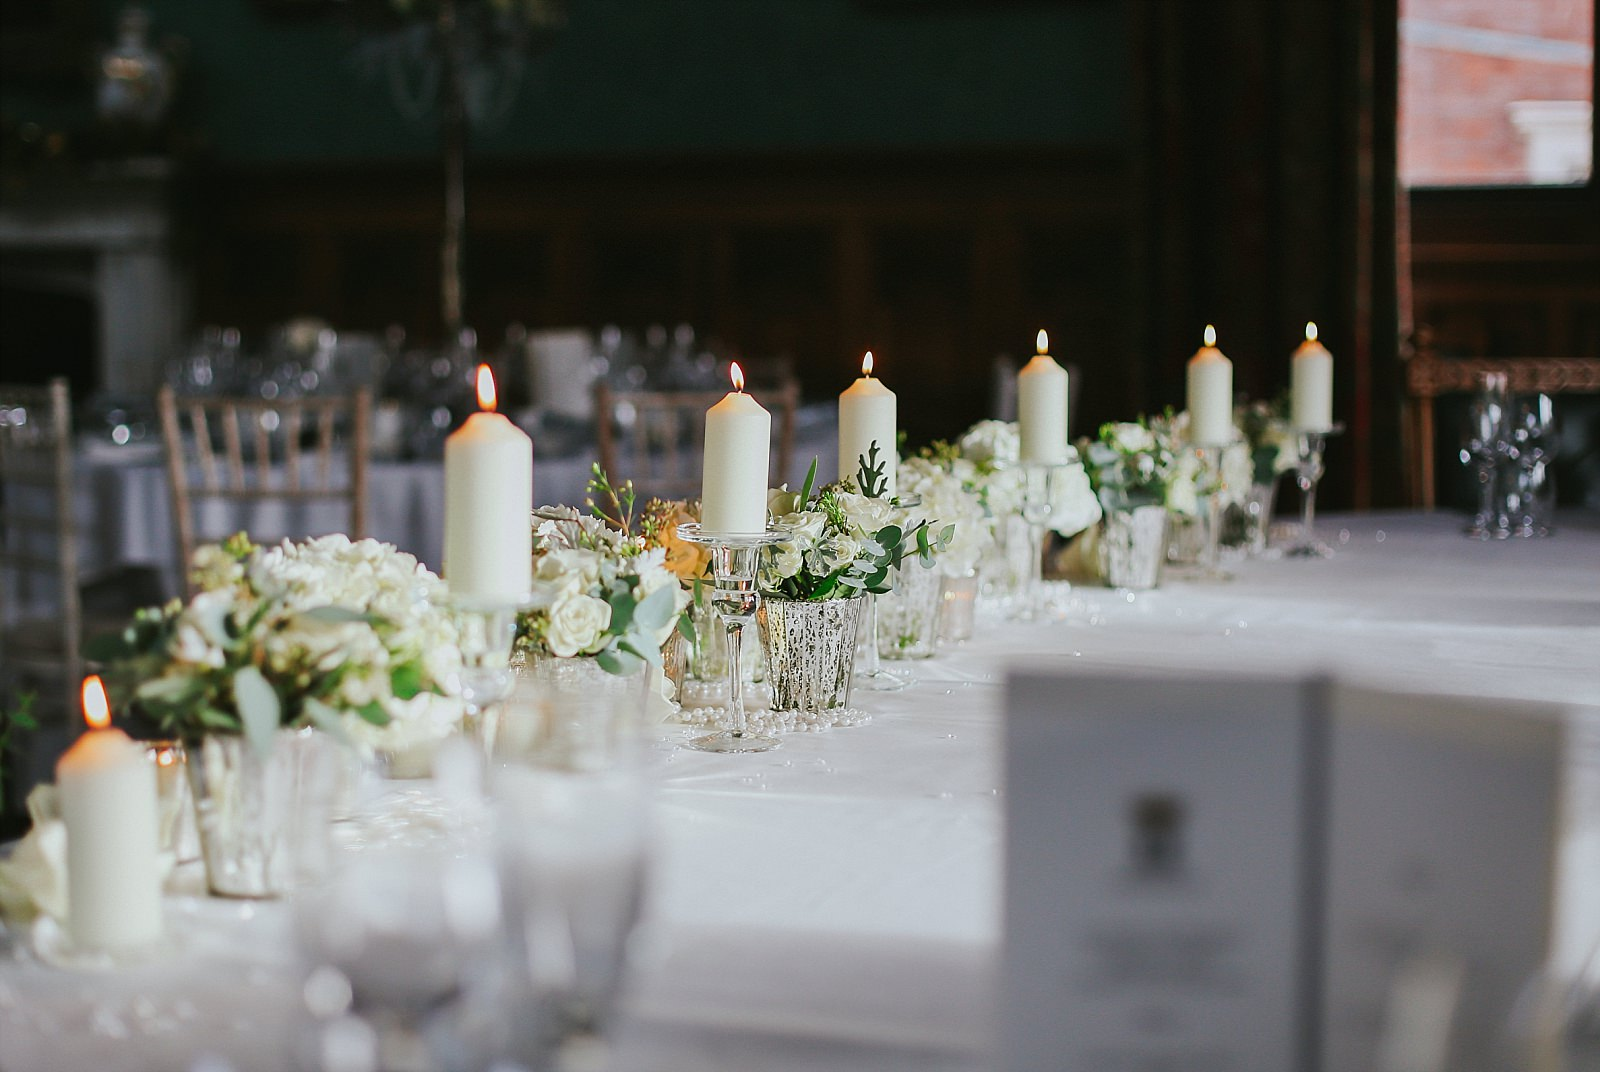 candles and flowers on a table at a wedding